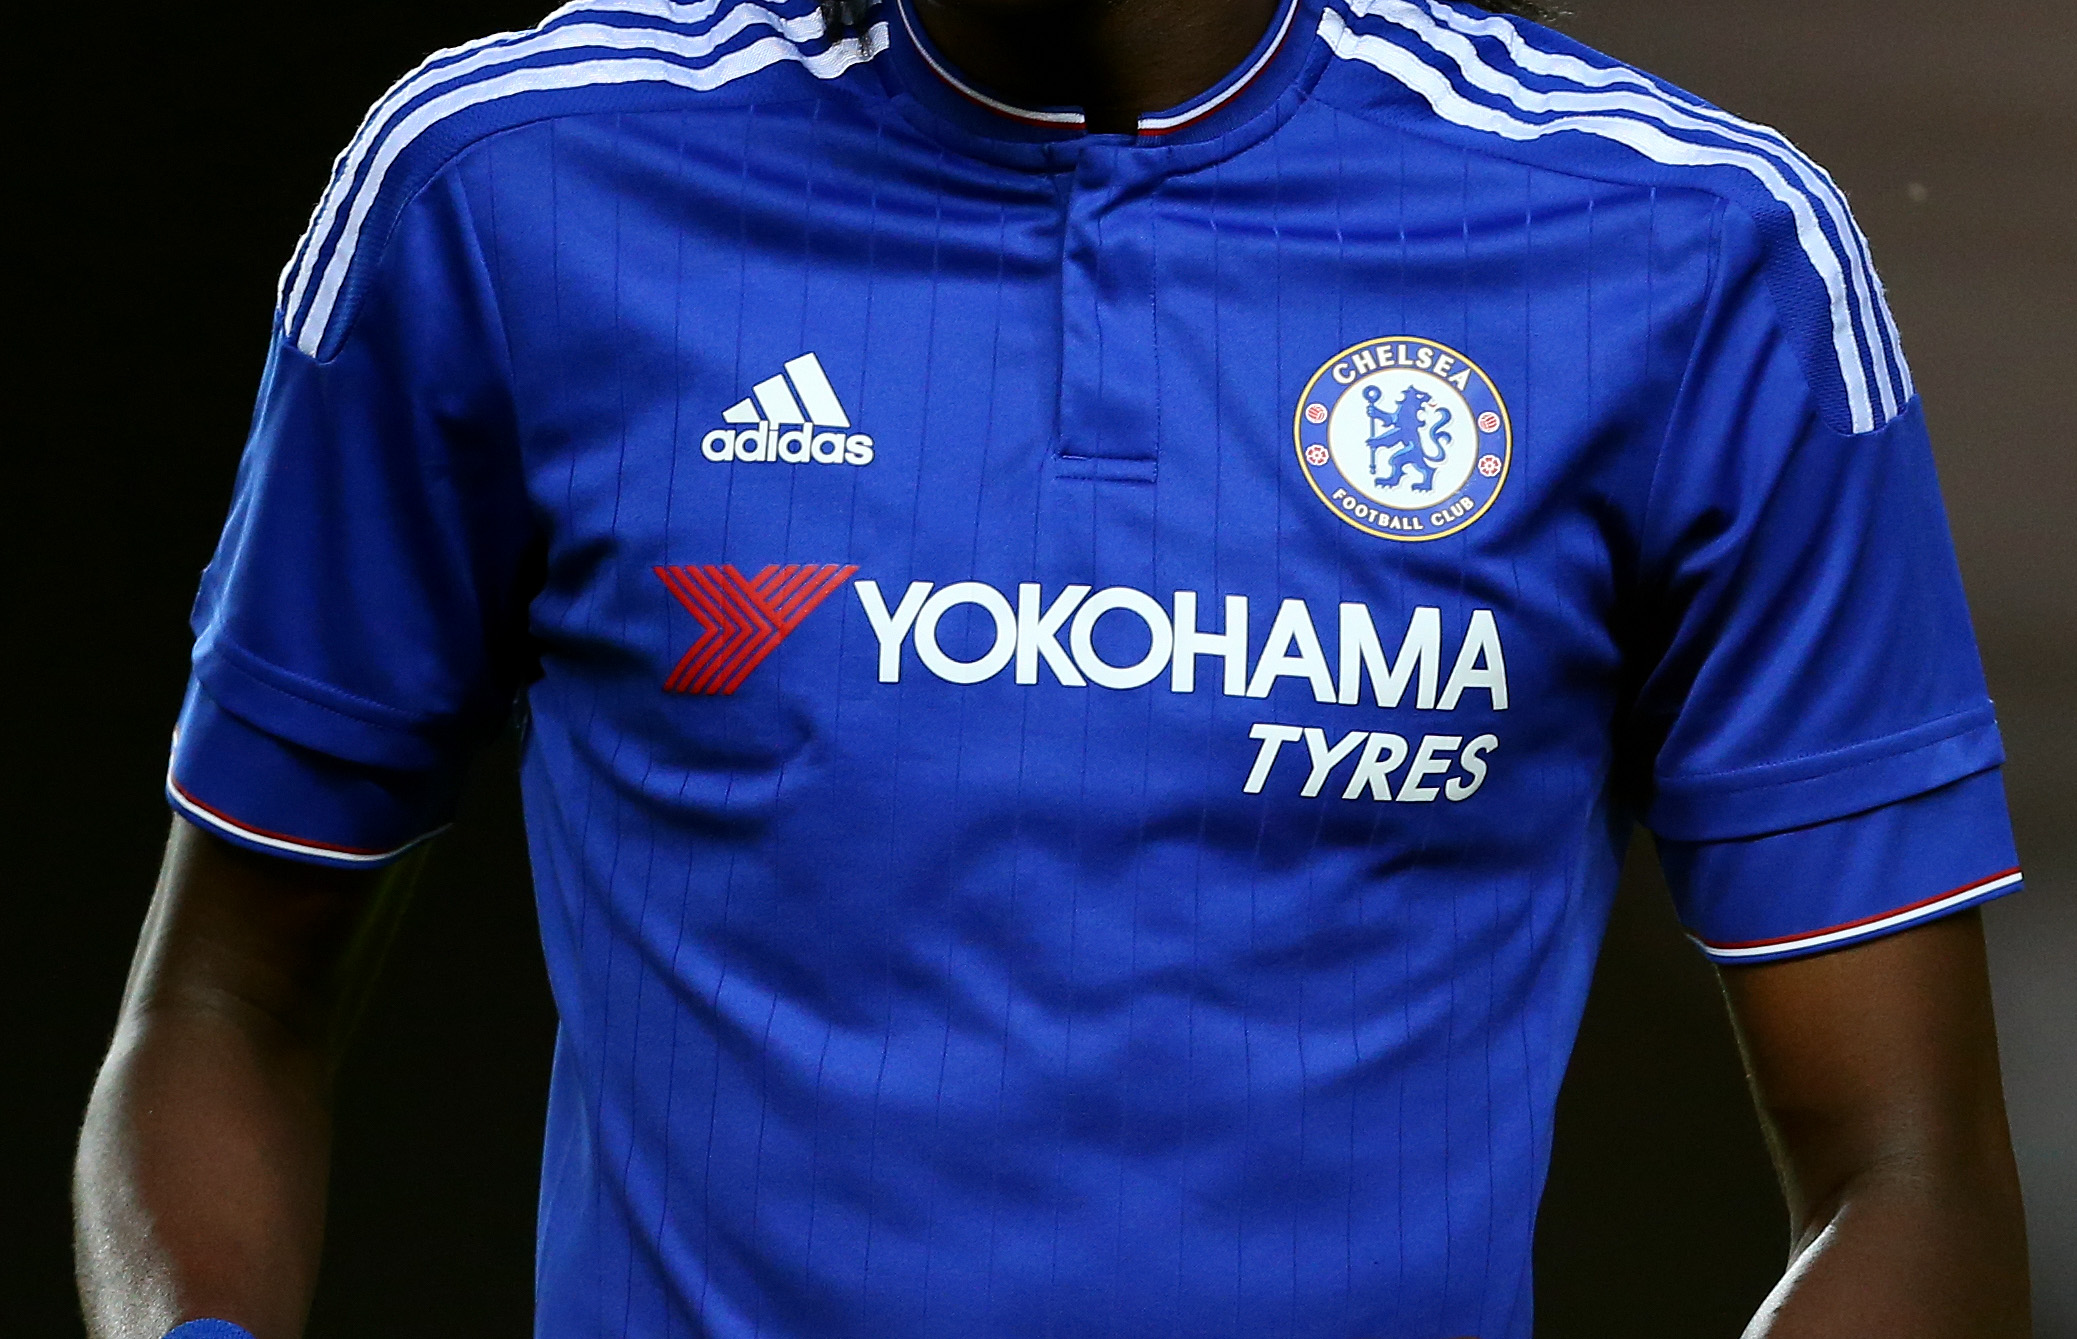 Chelsea 'testing the market' for new shirt sponsor — report